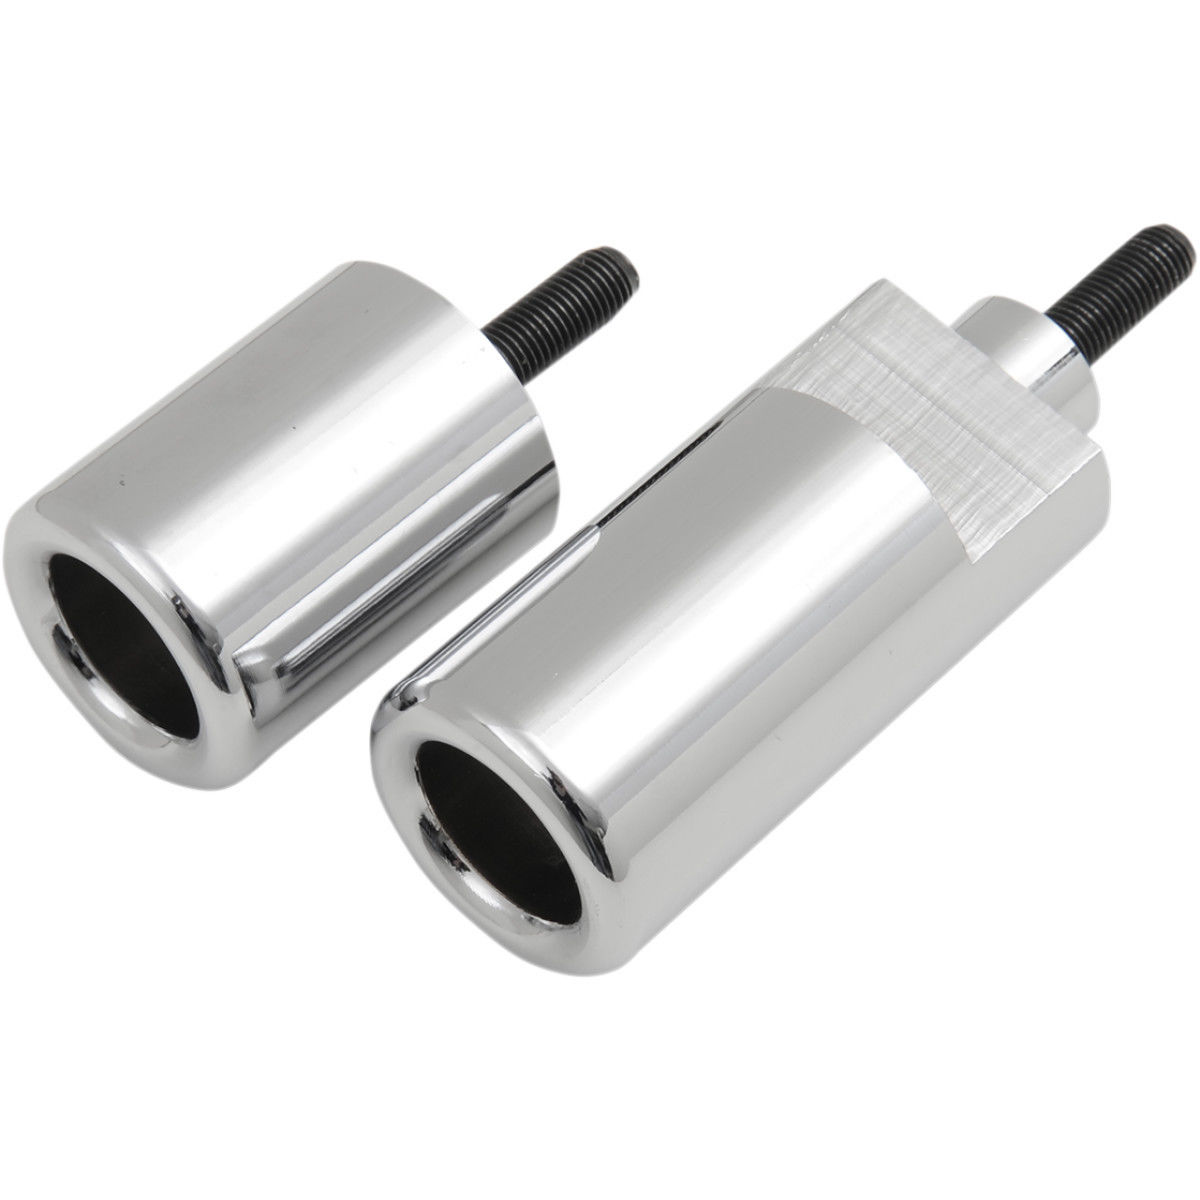 Frame Sliders AFP-550